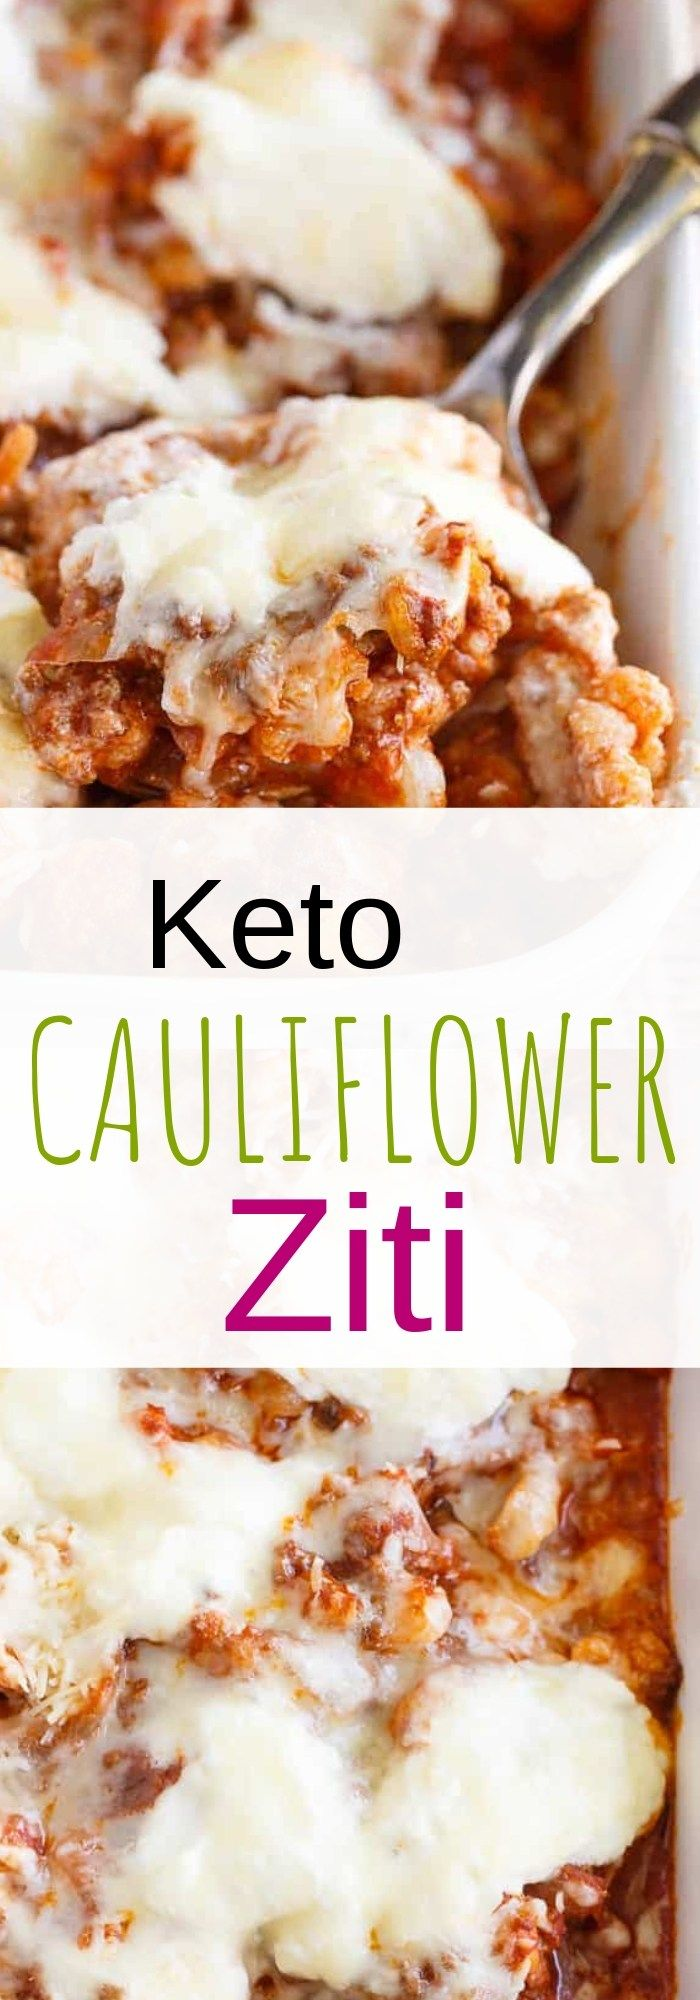 Keto Cauliflower Ziti Keto cauliflower, Keto recipes